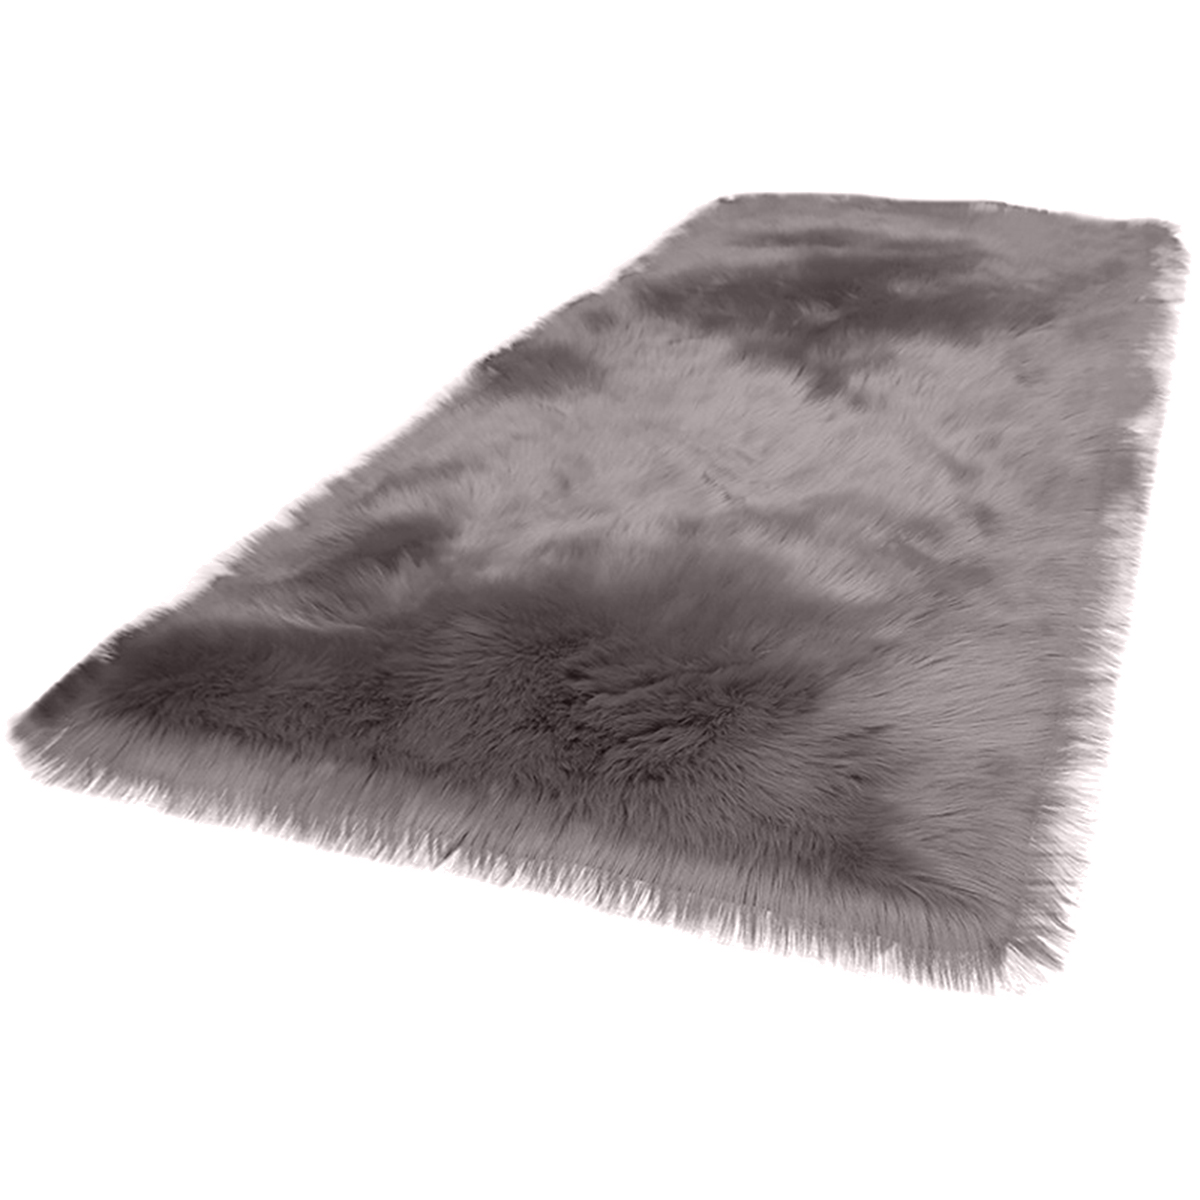 Faux Fur Rug Soft Fluffy Rug <font><b>60</b></font> x 90 cm Shaggy Rugs Faux Sheepskin Area Rugs Floor Carpets for Bedrooms Living Room Kids Rooms image